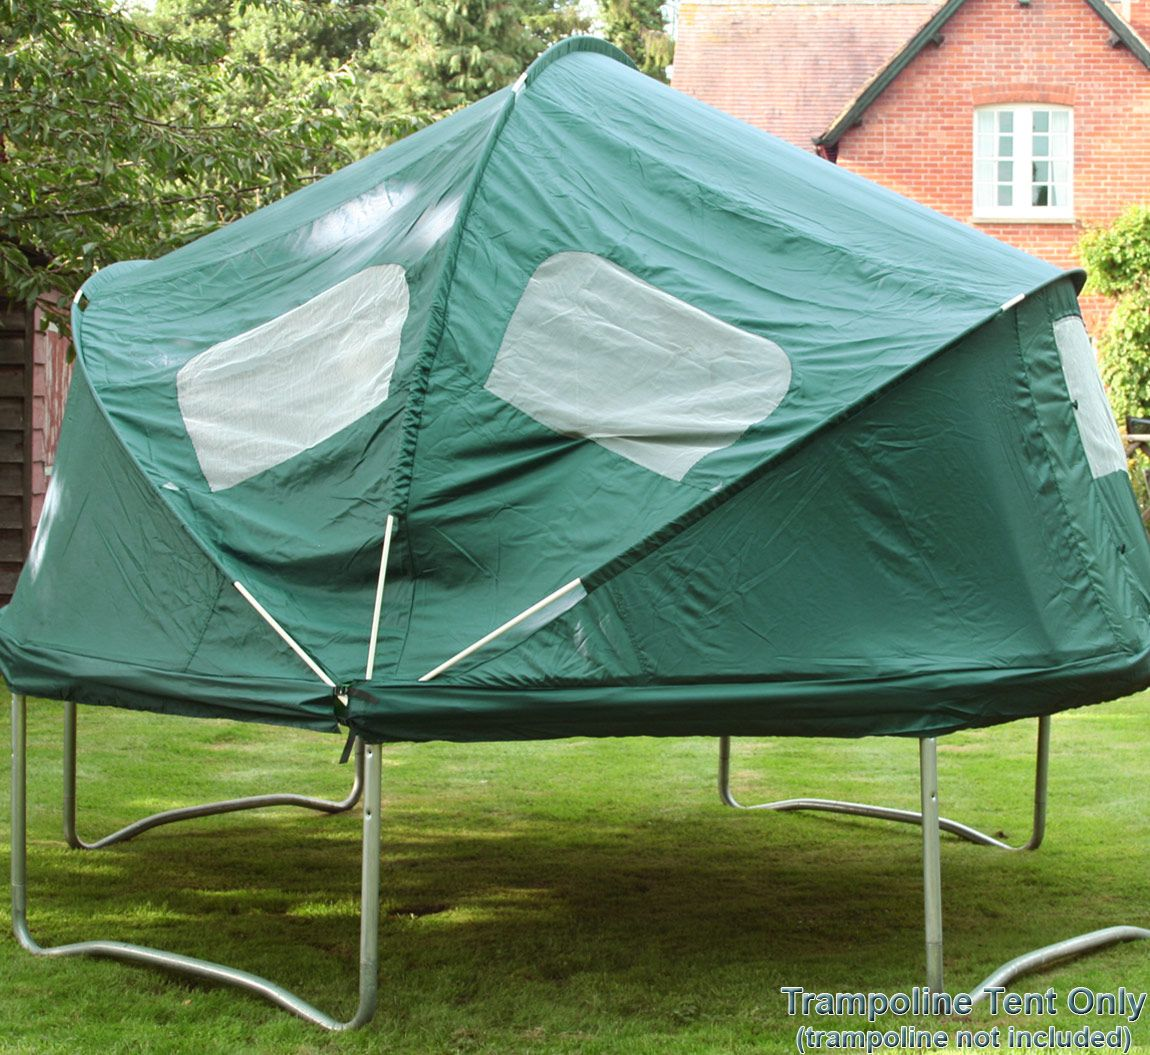 The Trampoline Tents Provide A Fun Den For Your Complete With Windows And Doors Fly Screens Just Like Real Tent